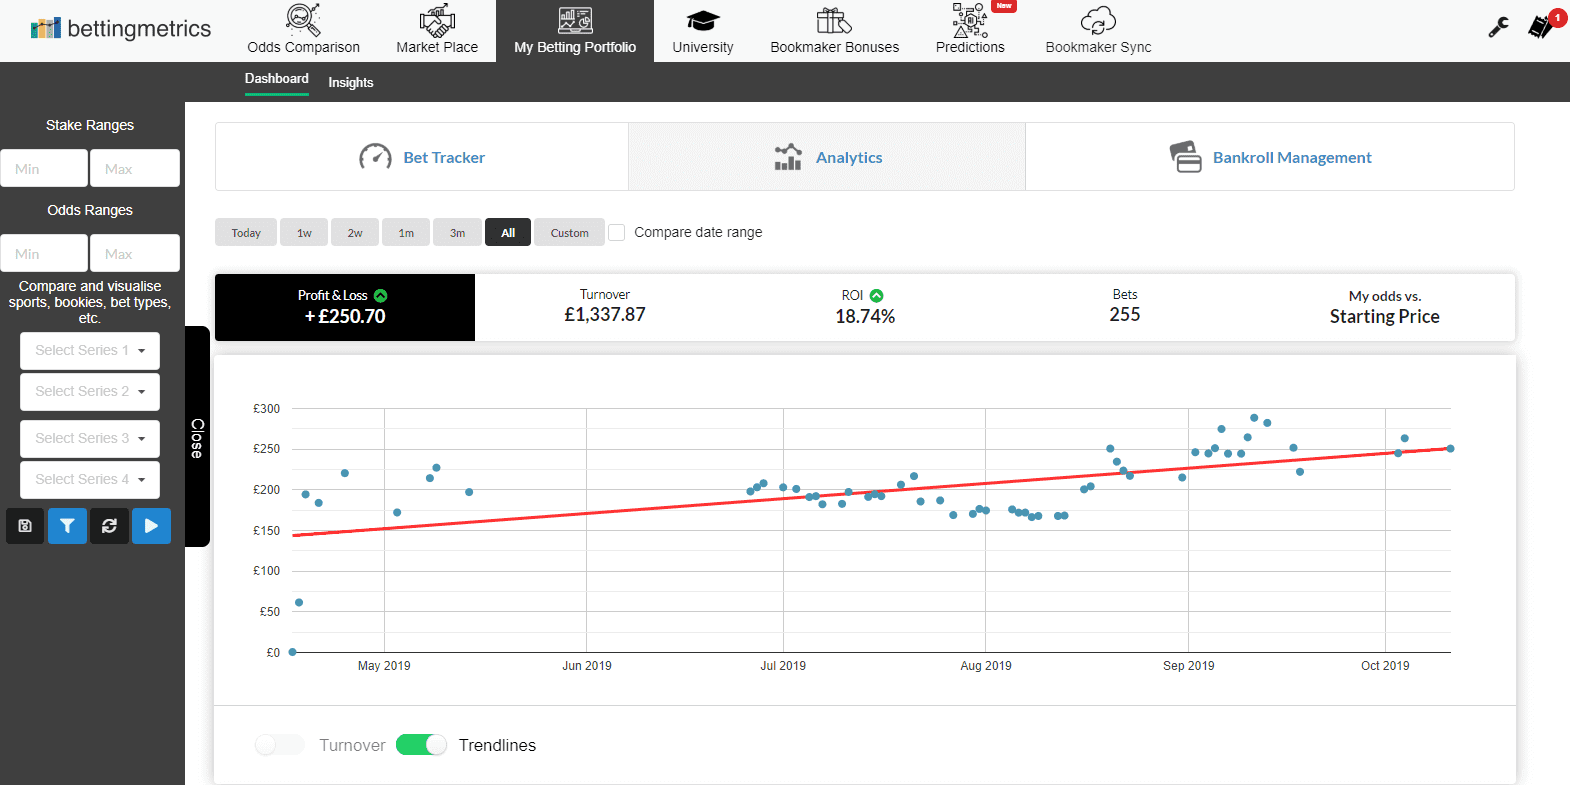 Presenting the new trendline feature and explanation of how to use it